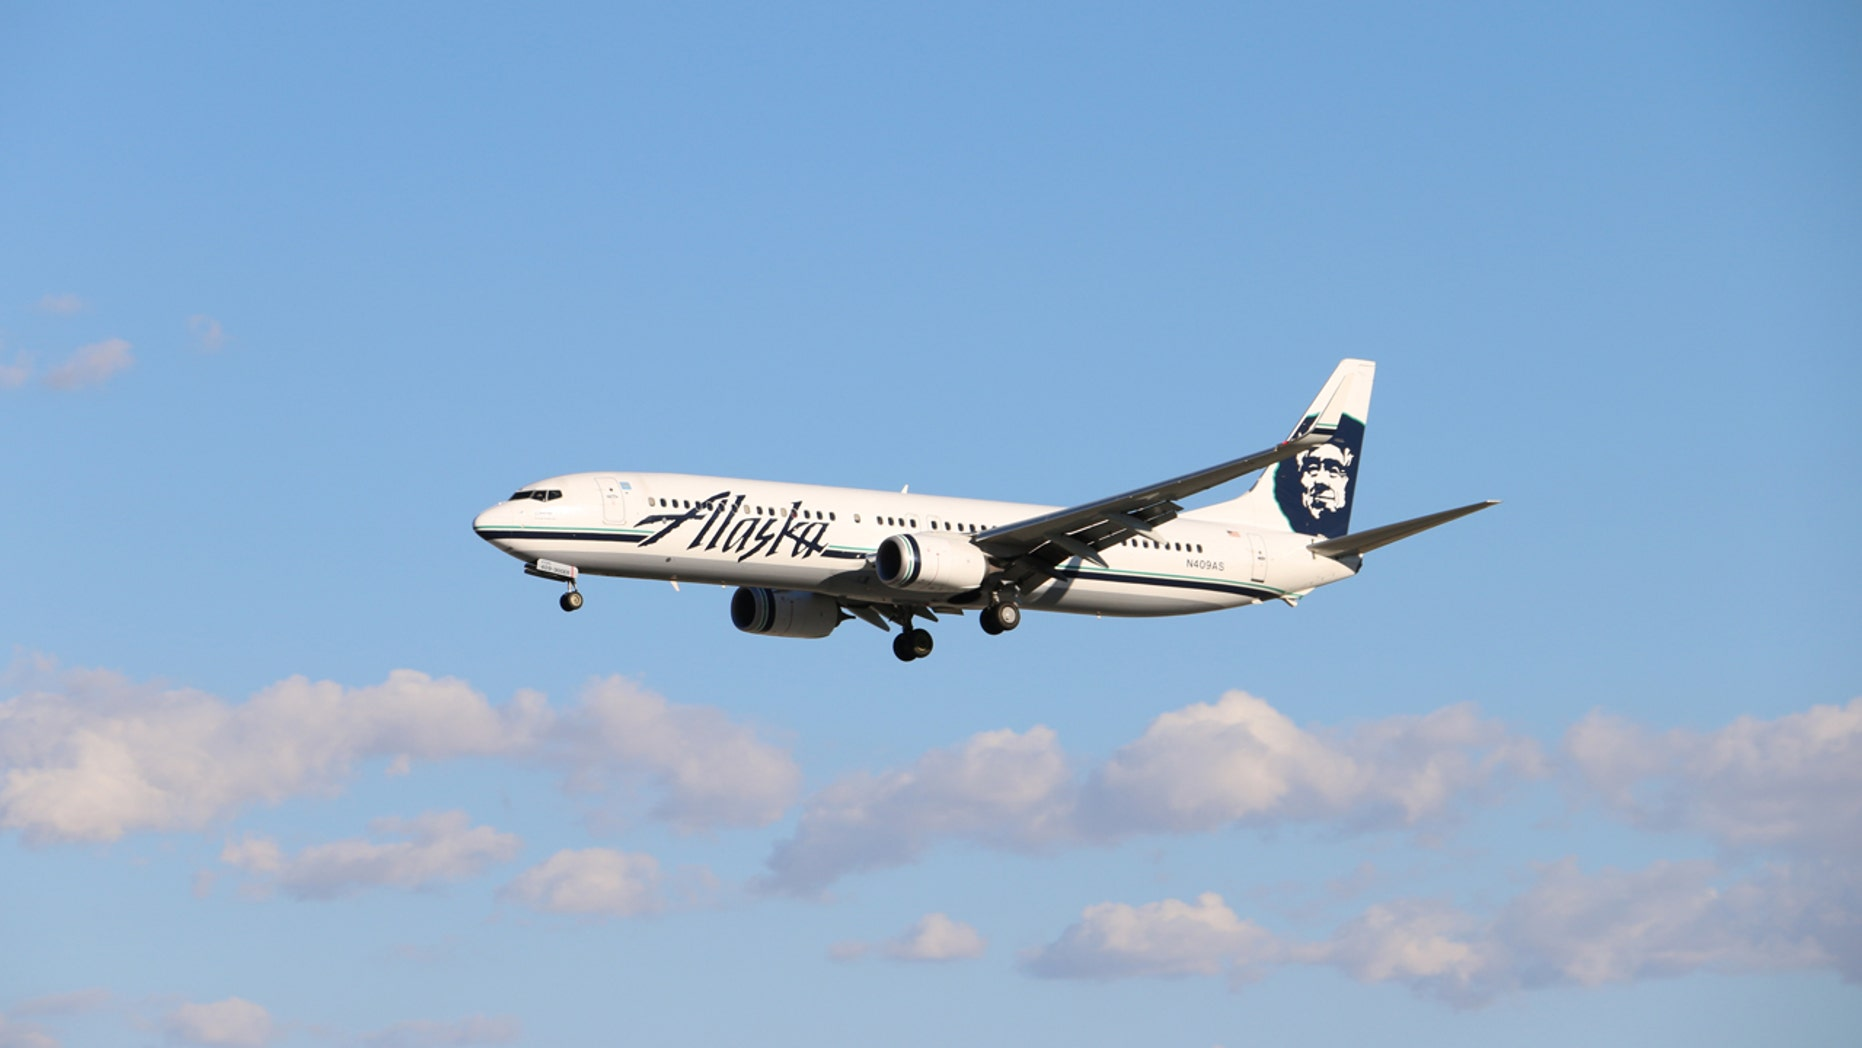 c9144e8db5d0 Alaska Airlines is shrinking the size of carry-on luggage